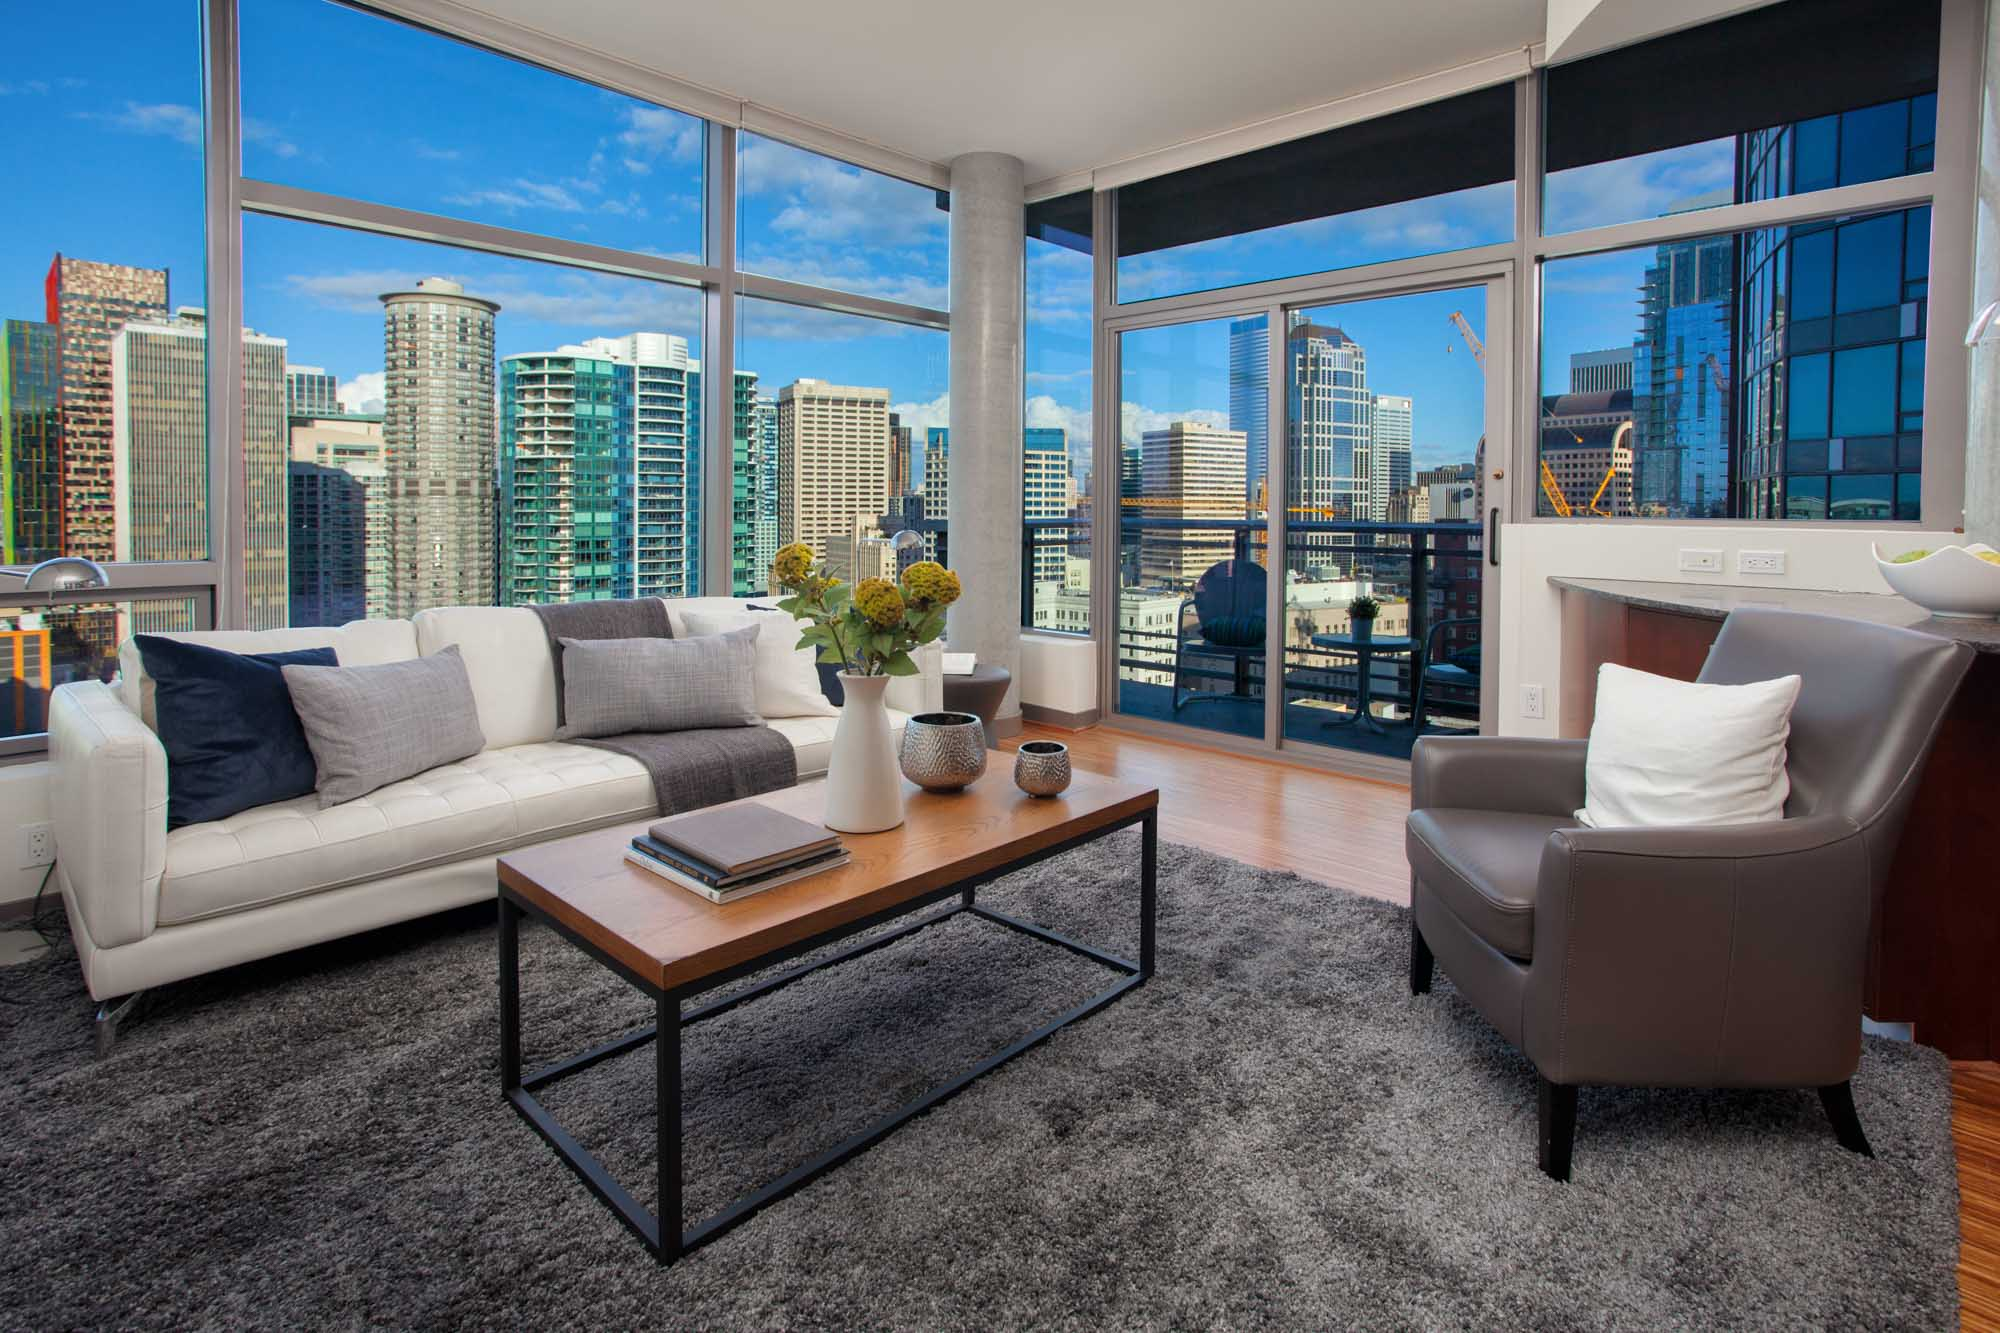 cosmopolitan two bedroom city suite. Find Similar Properties View Virtual Tour Print This Property Share Cosmopolitan Two Bedroom City Suite